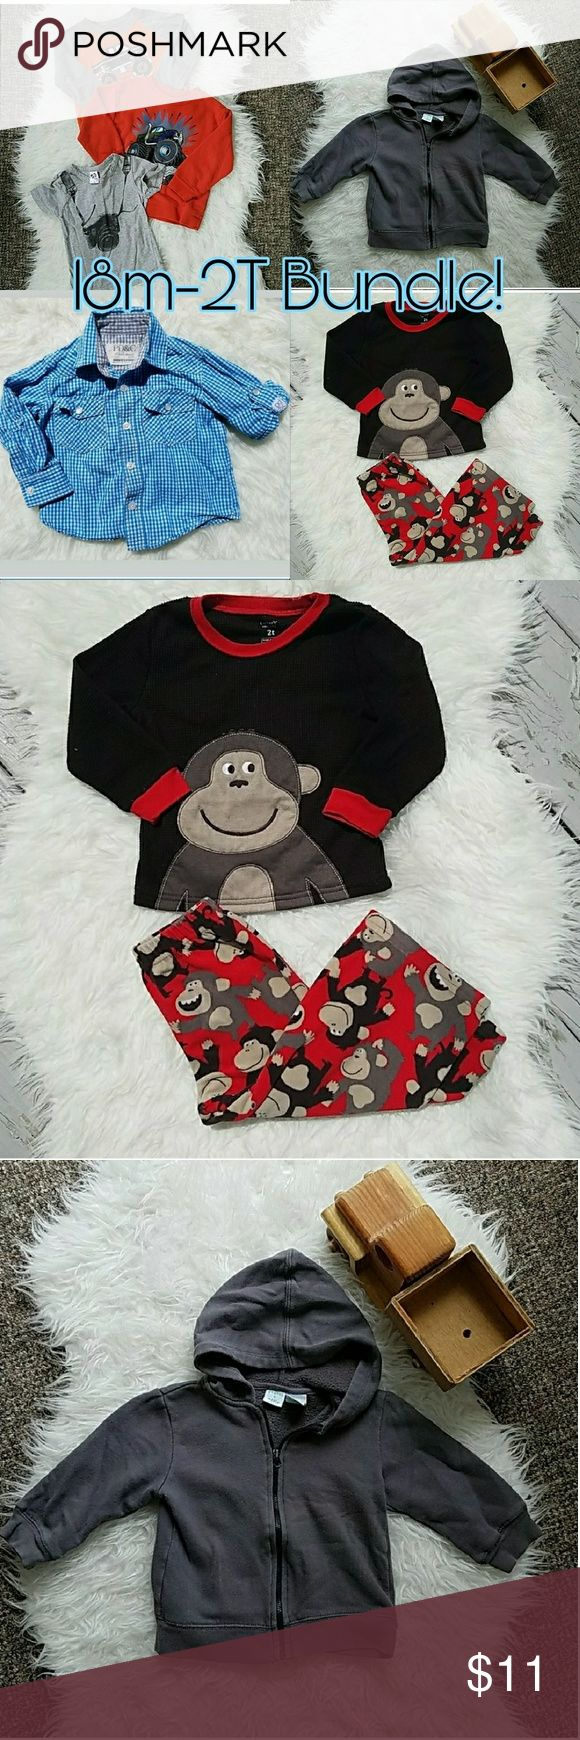 🔥SALE! 7 Piece Boys 18m-2T Bundle! 7 Piece Boys 18m-2T Bundle! Carter's MO key PJ set (2T) lightly pilled. Peanut & Ollie (2T) gray sweatshirt lightly pilled, paint on zipper partly gone. Paper Denim & Cloth 24M button up dress shirt is in excellent condition. Camera shirt (18m? No size) in very good condition. Monster truck shirts (24m-2T) may have very minor stains (not noticeable if there at all) but all of the clothes are still VERY usable! I just want them gone from my house!   See my…